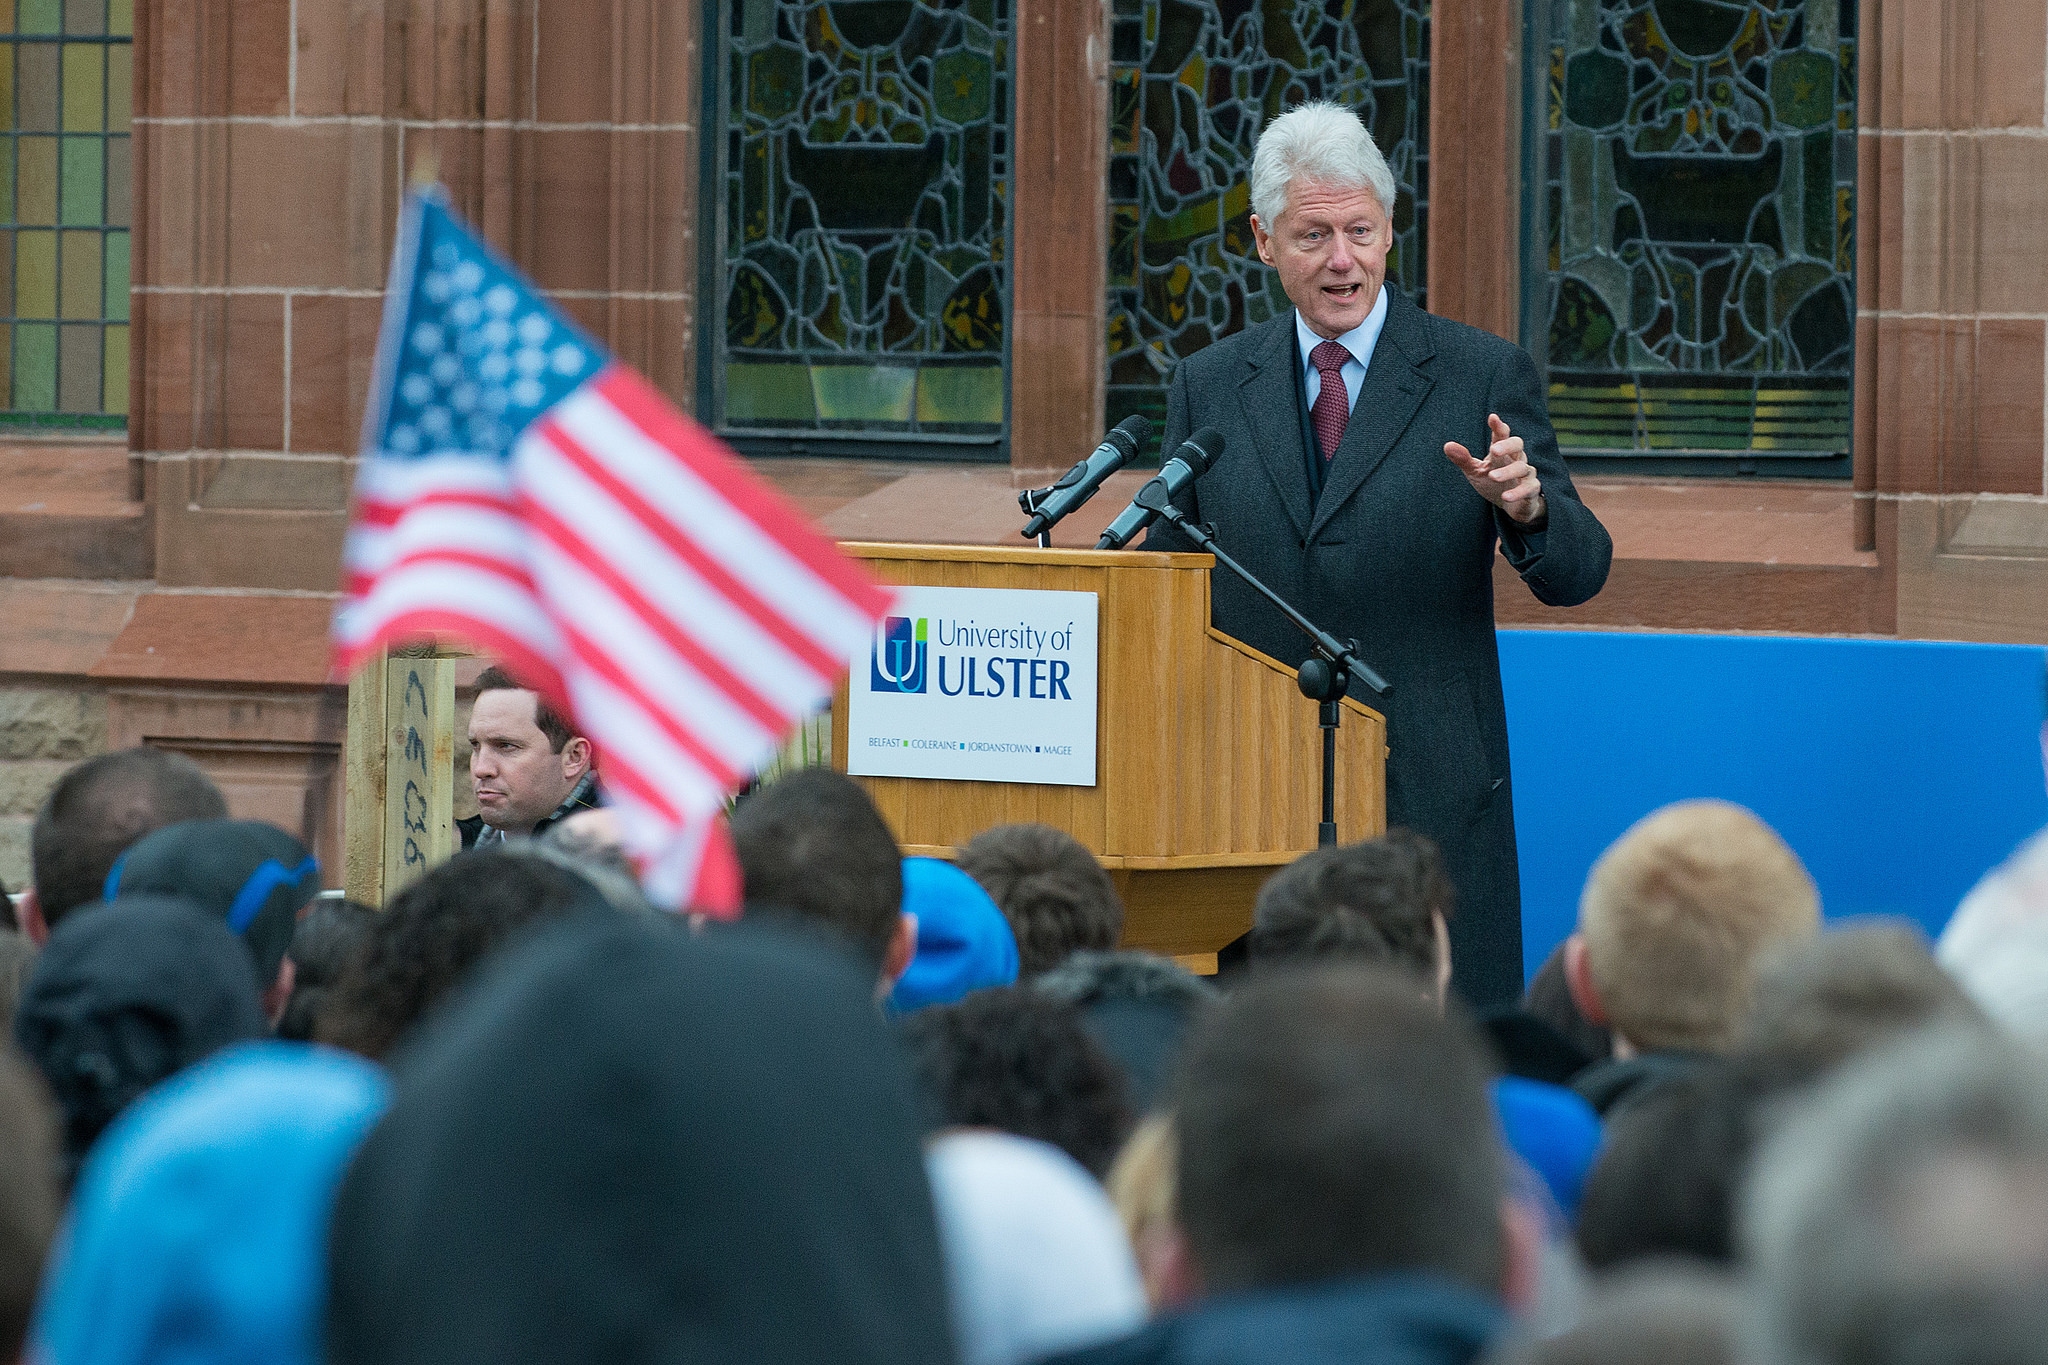 Ulster Hosts President Clinton and Launches New Book